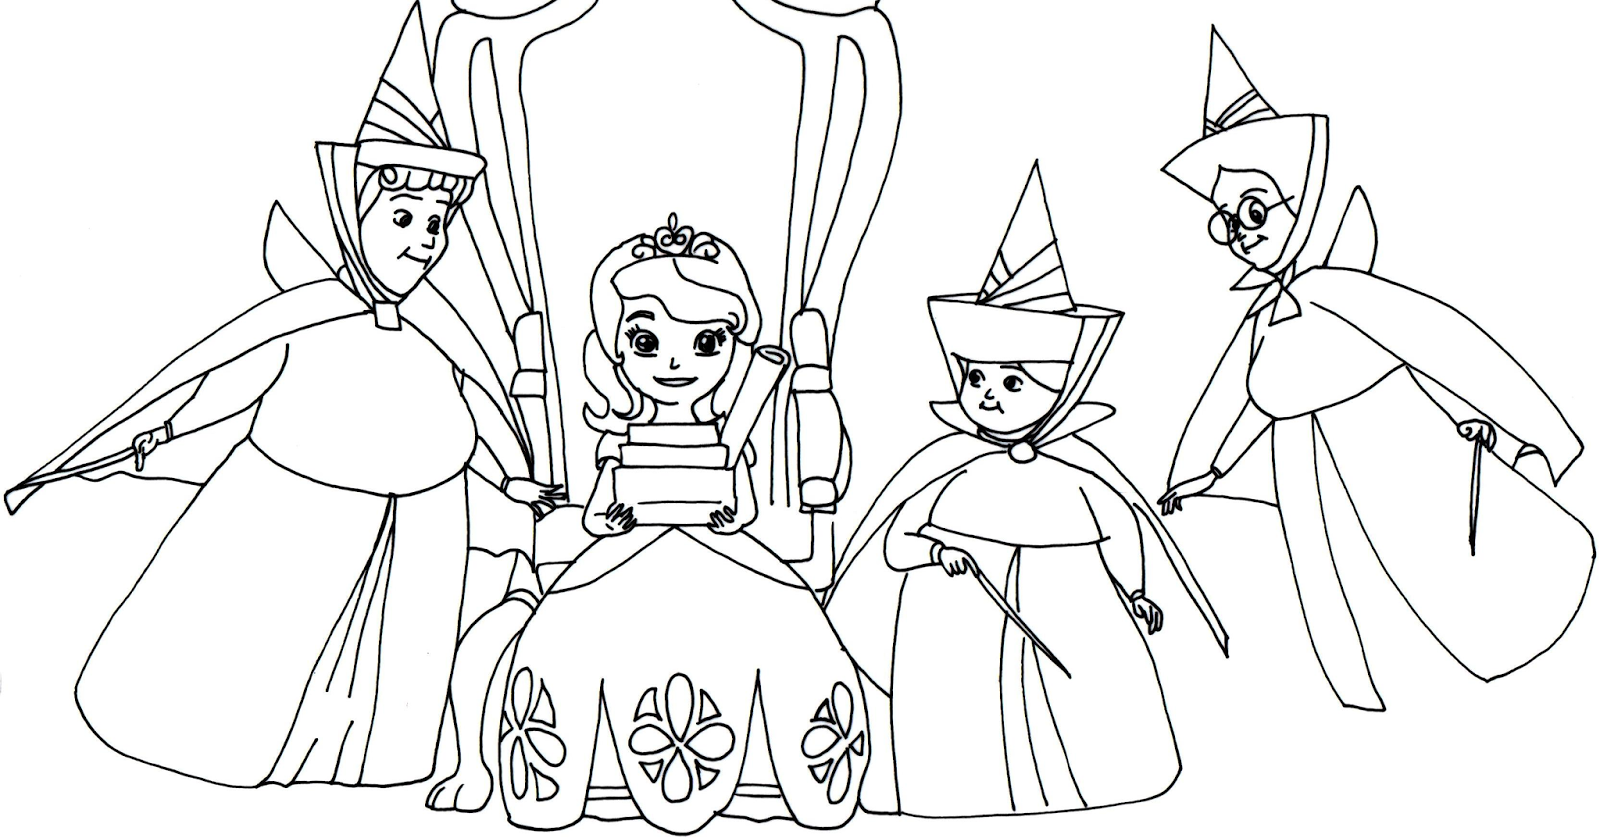 sofia the first coloring page with headmistresses fauna flora and merryweather